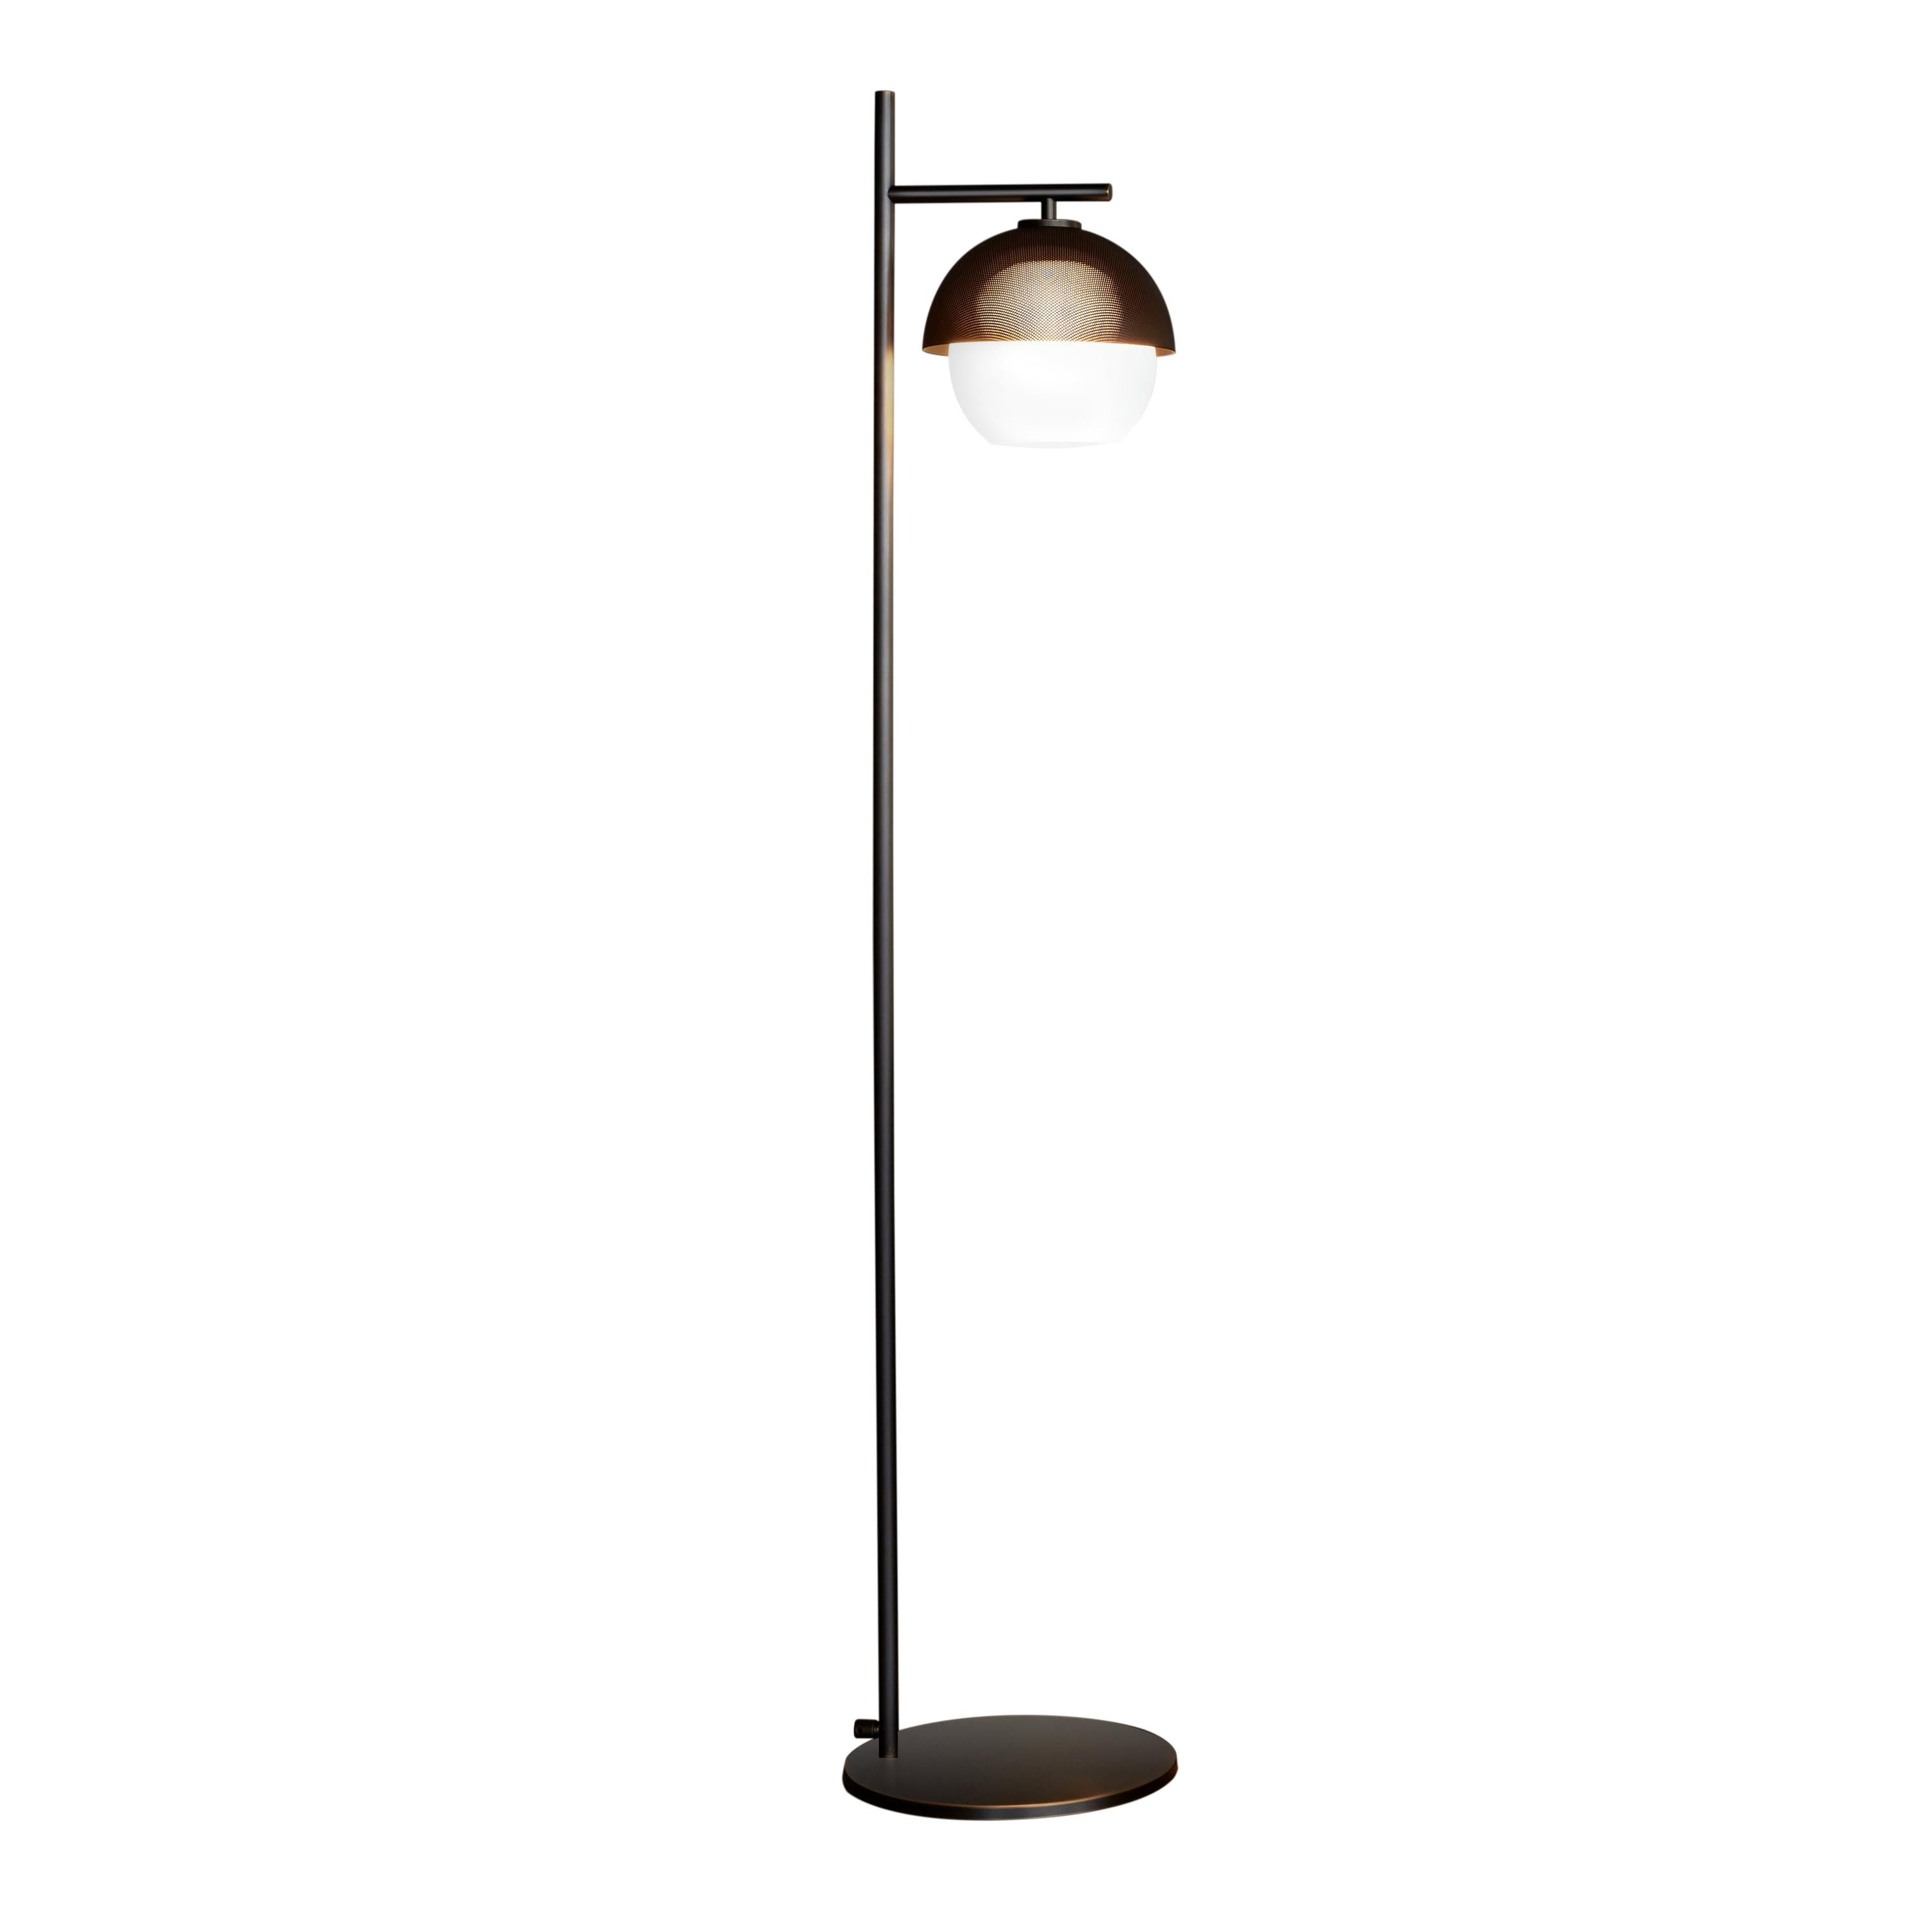 VeniceM Urban Floor Light 1 in Dark Burnished Brass and Glass by Massimo Tonetto